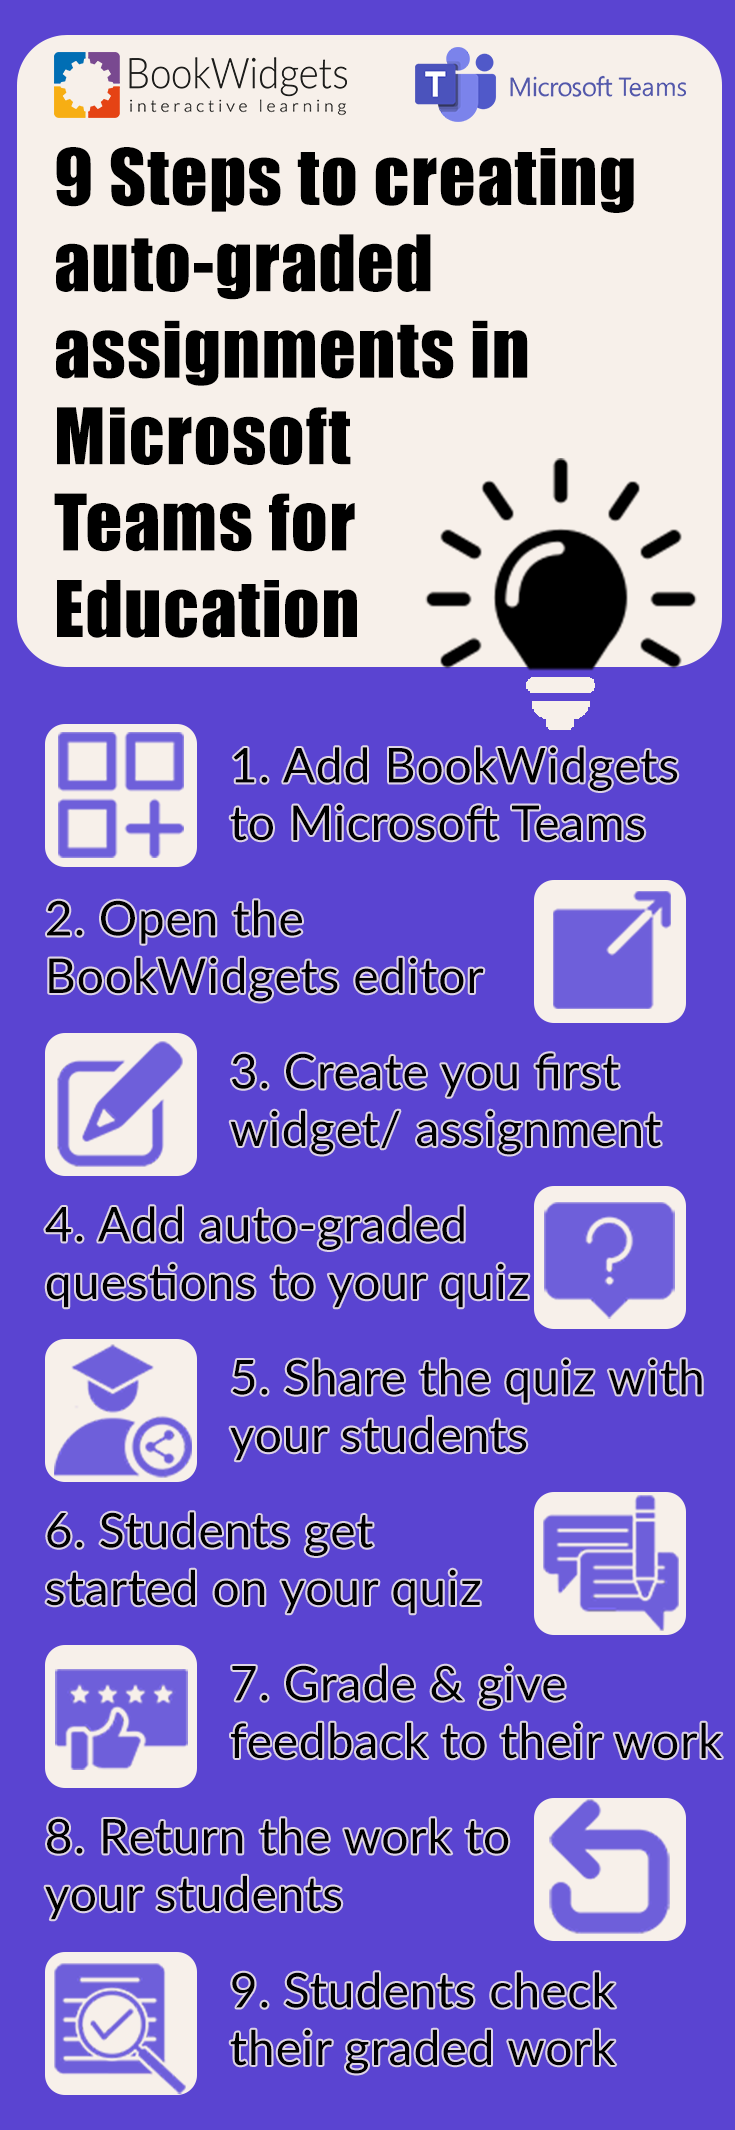 9 steps to creating auto-graded assignments in Microsoft Teams for education